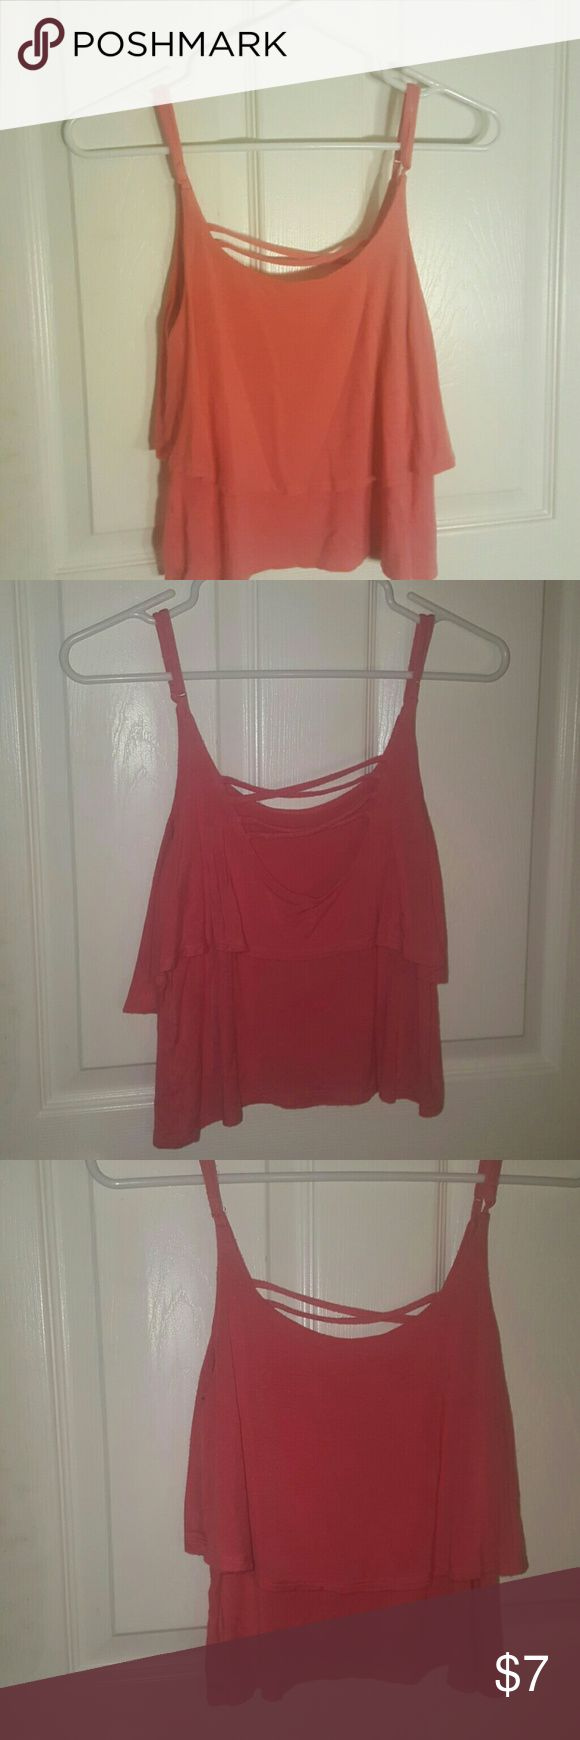 Layred Pink Tank Top Coral Adjustable Spaghetti Strap Tank Tops Tank Tops